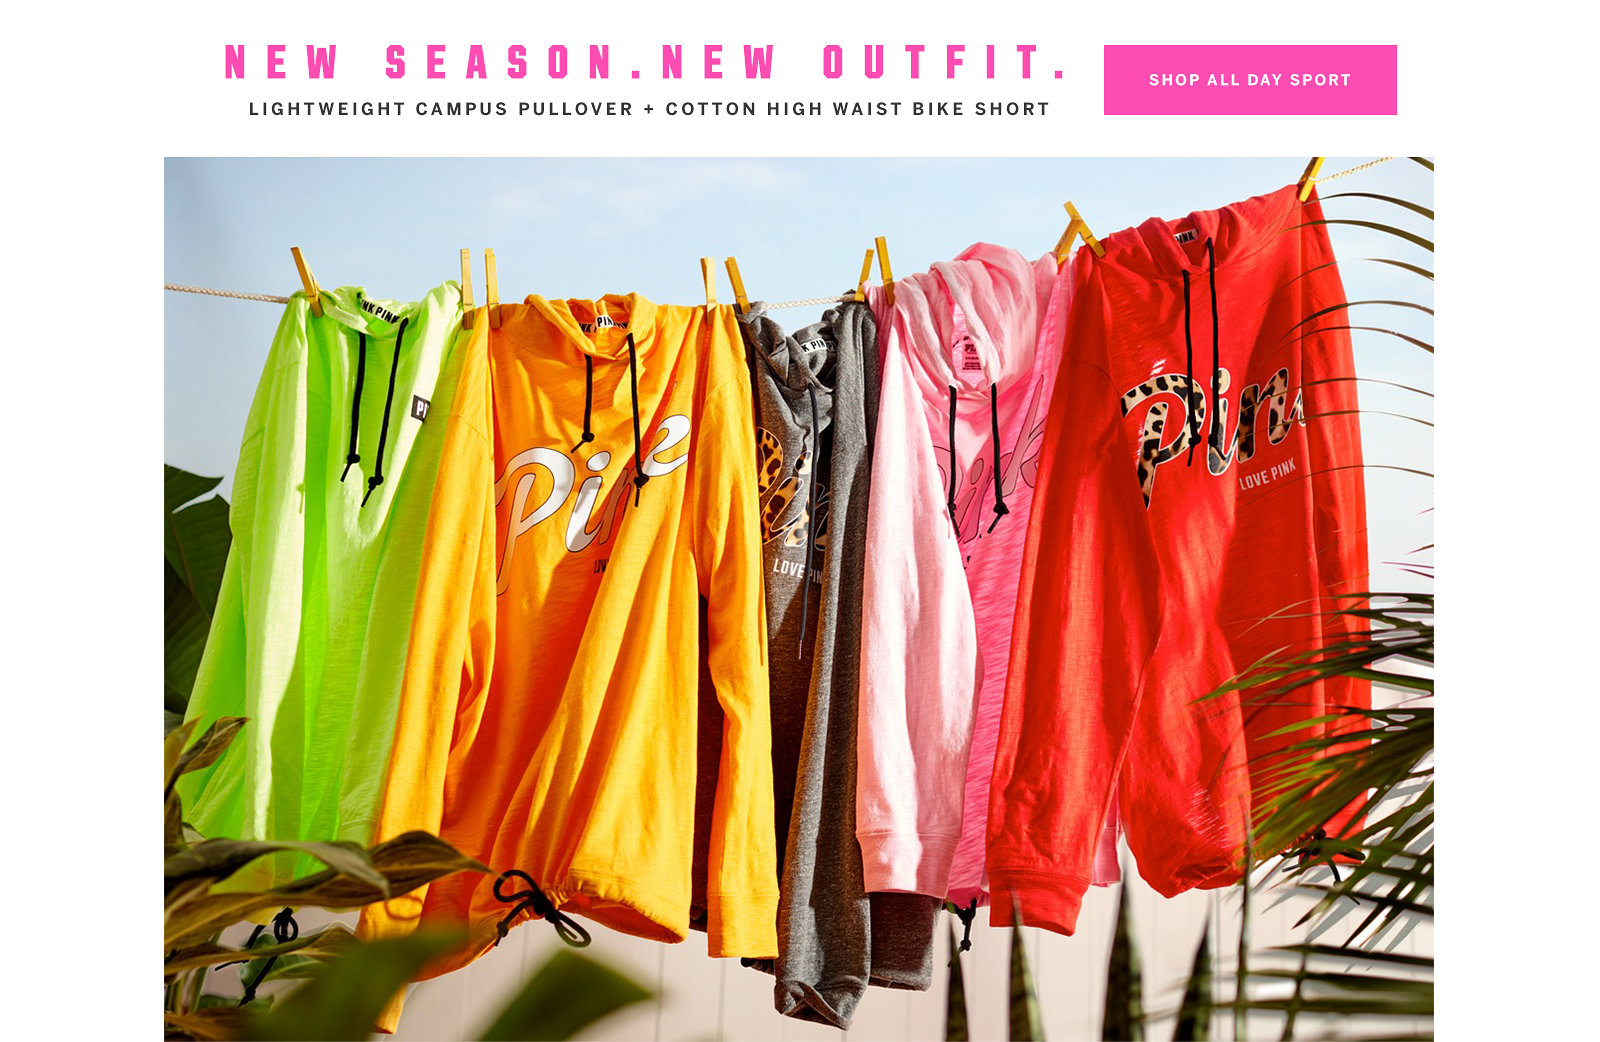 95d06b23690 New Season. New Outfit. Lightweight Campus Pullover + Cotton High Waist  Bike Short.